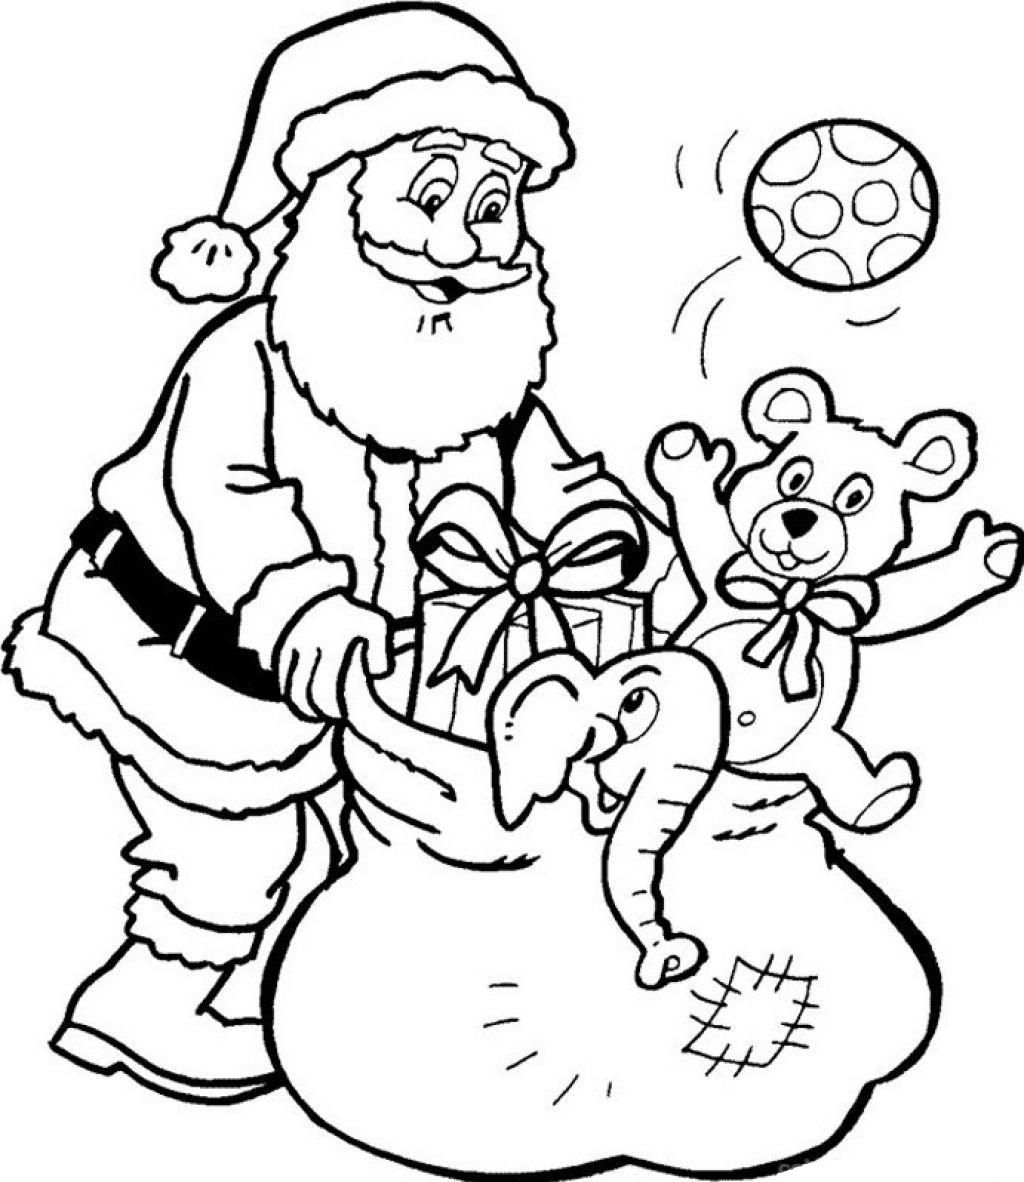 Santa Claus Print Out Coloring Pages With And Presents Printable Christmas Some